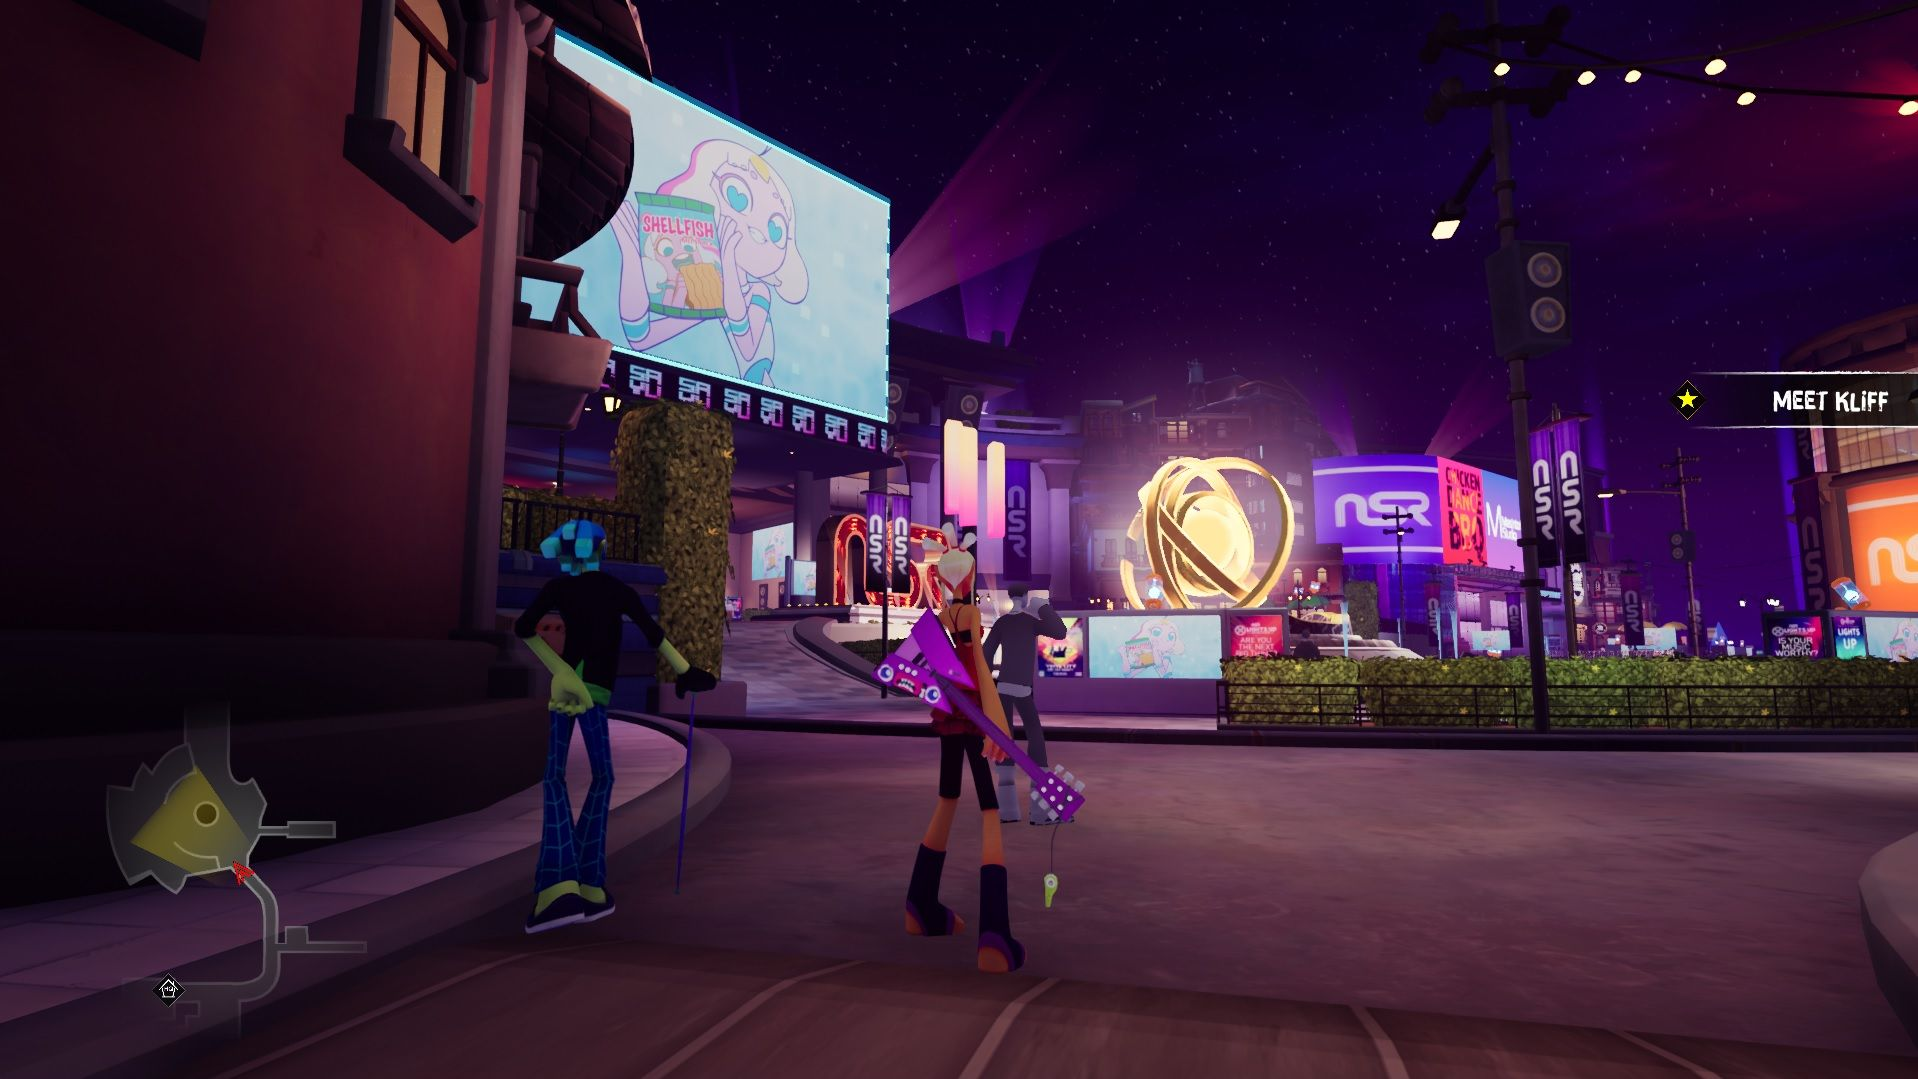 A screenshot of the city hub area in No Straight Roads. Vinyl City is futuristic, with a lot of add screens. There is a big golden sculpture that looks a bit like an atom spinning in the centre of an open plaza